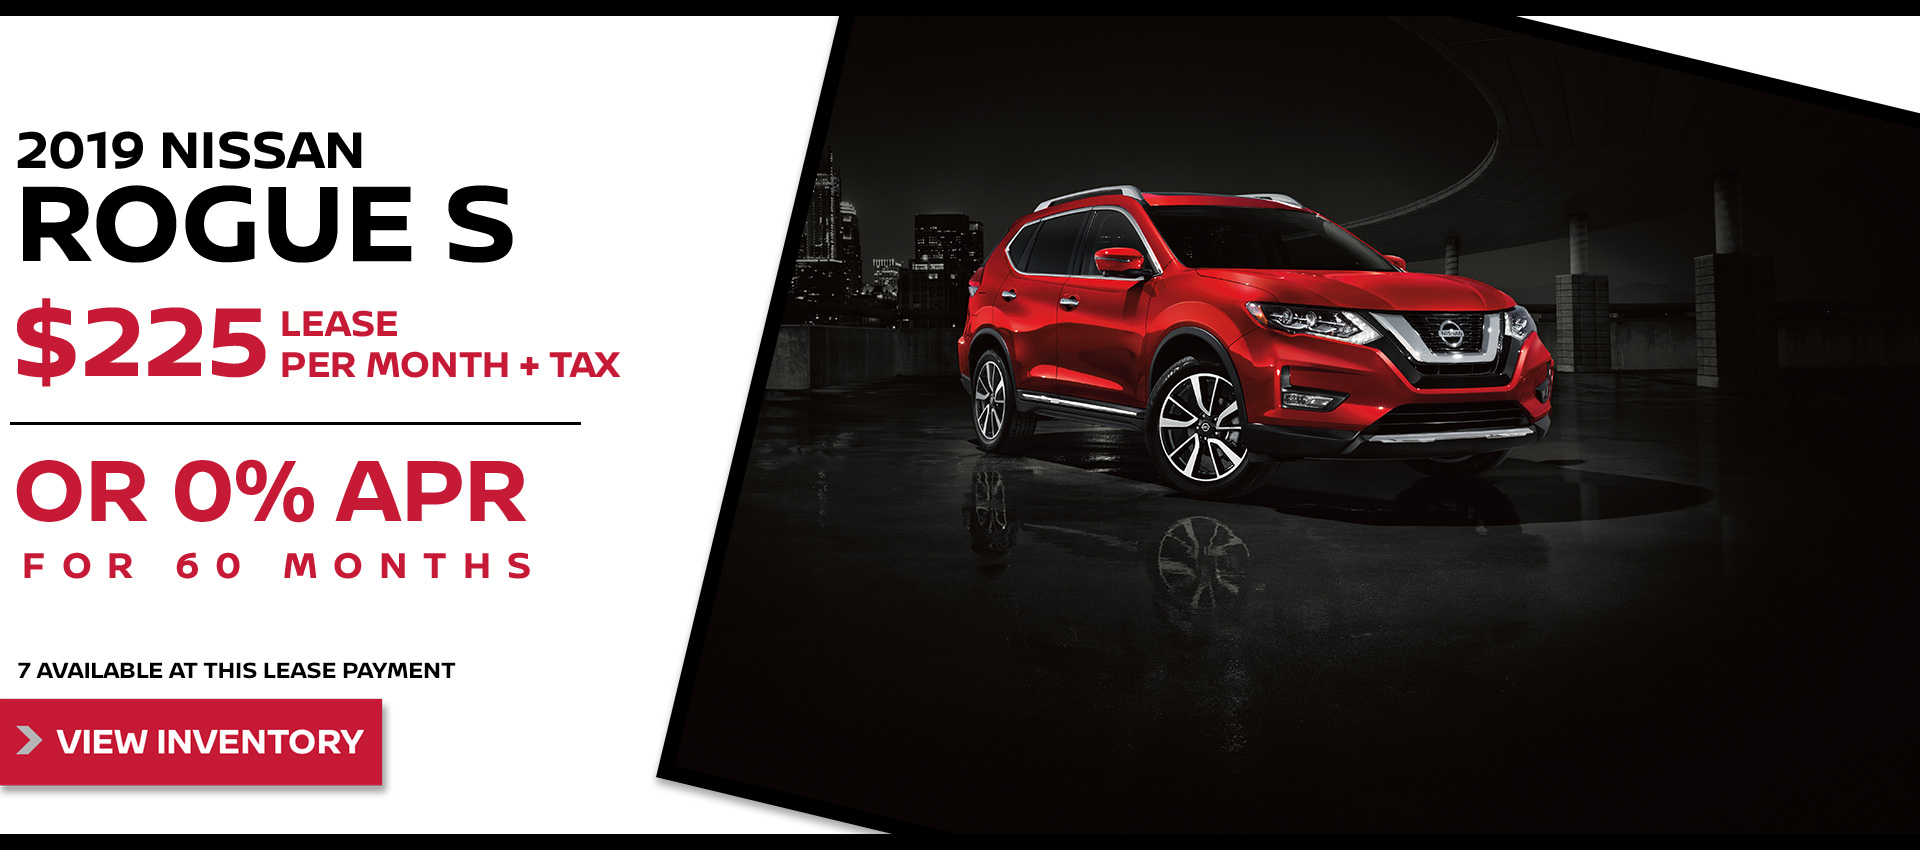 Mossy Nissan - Nissan Rogue $225 Lease HP